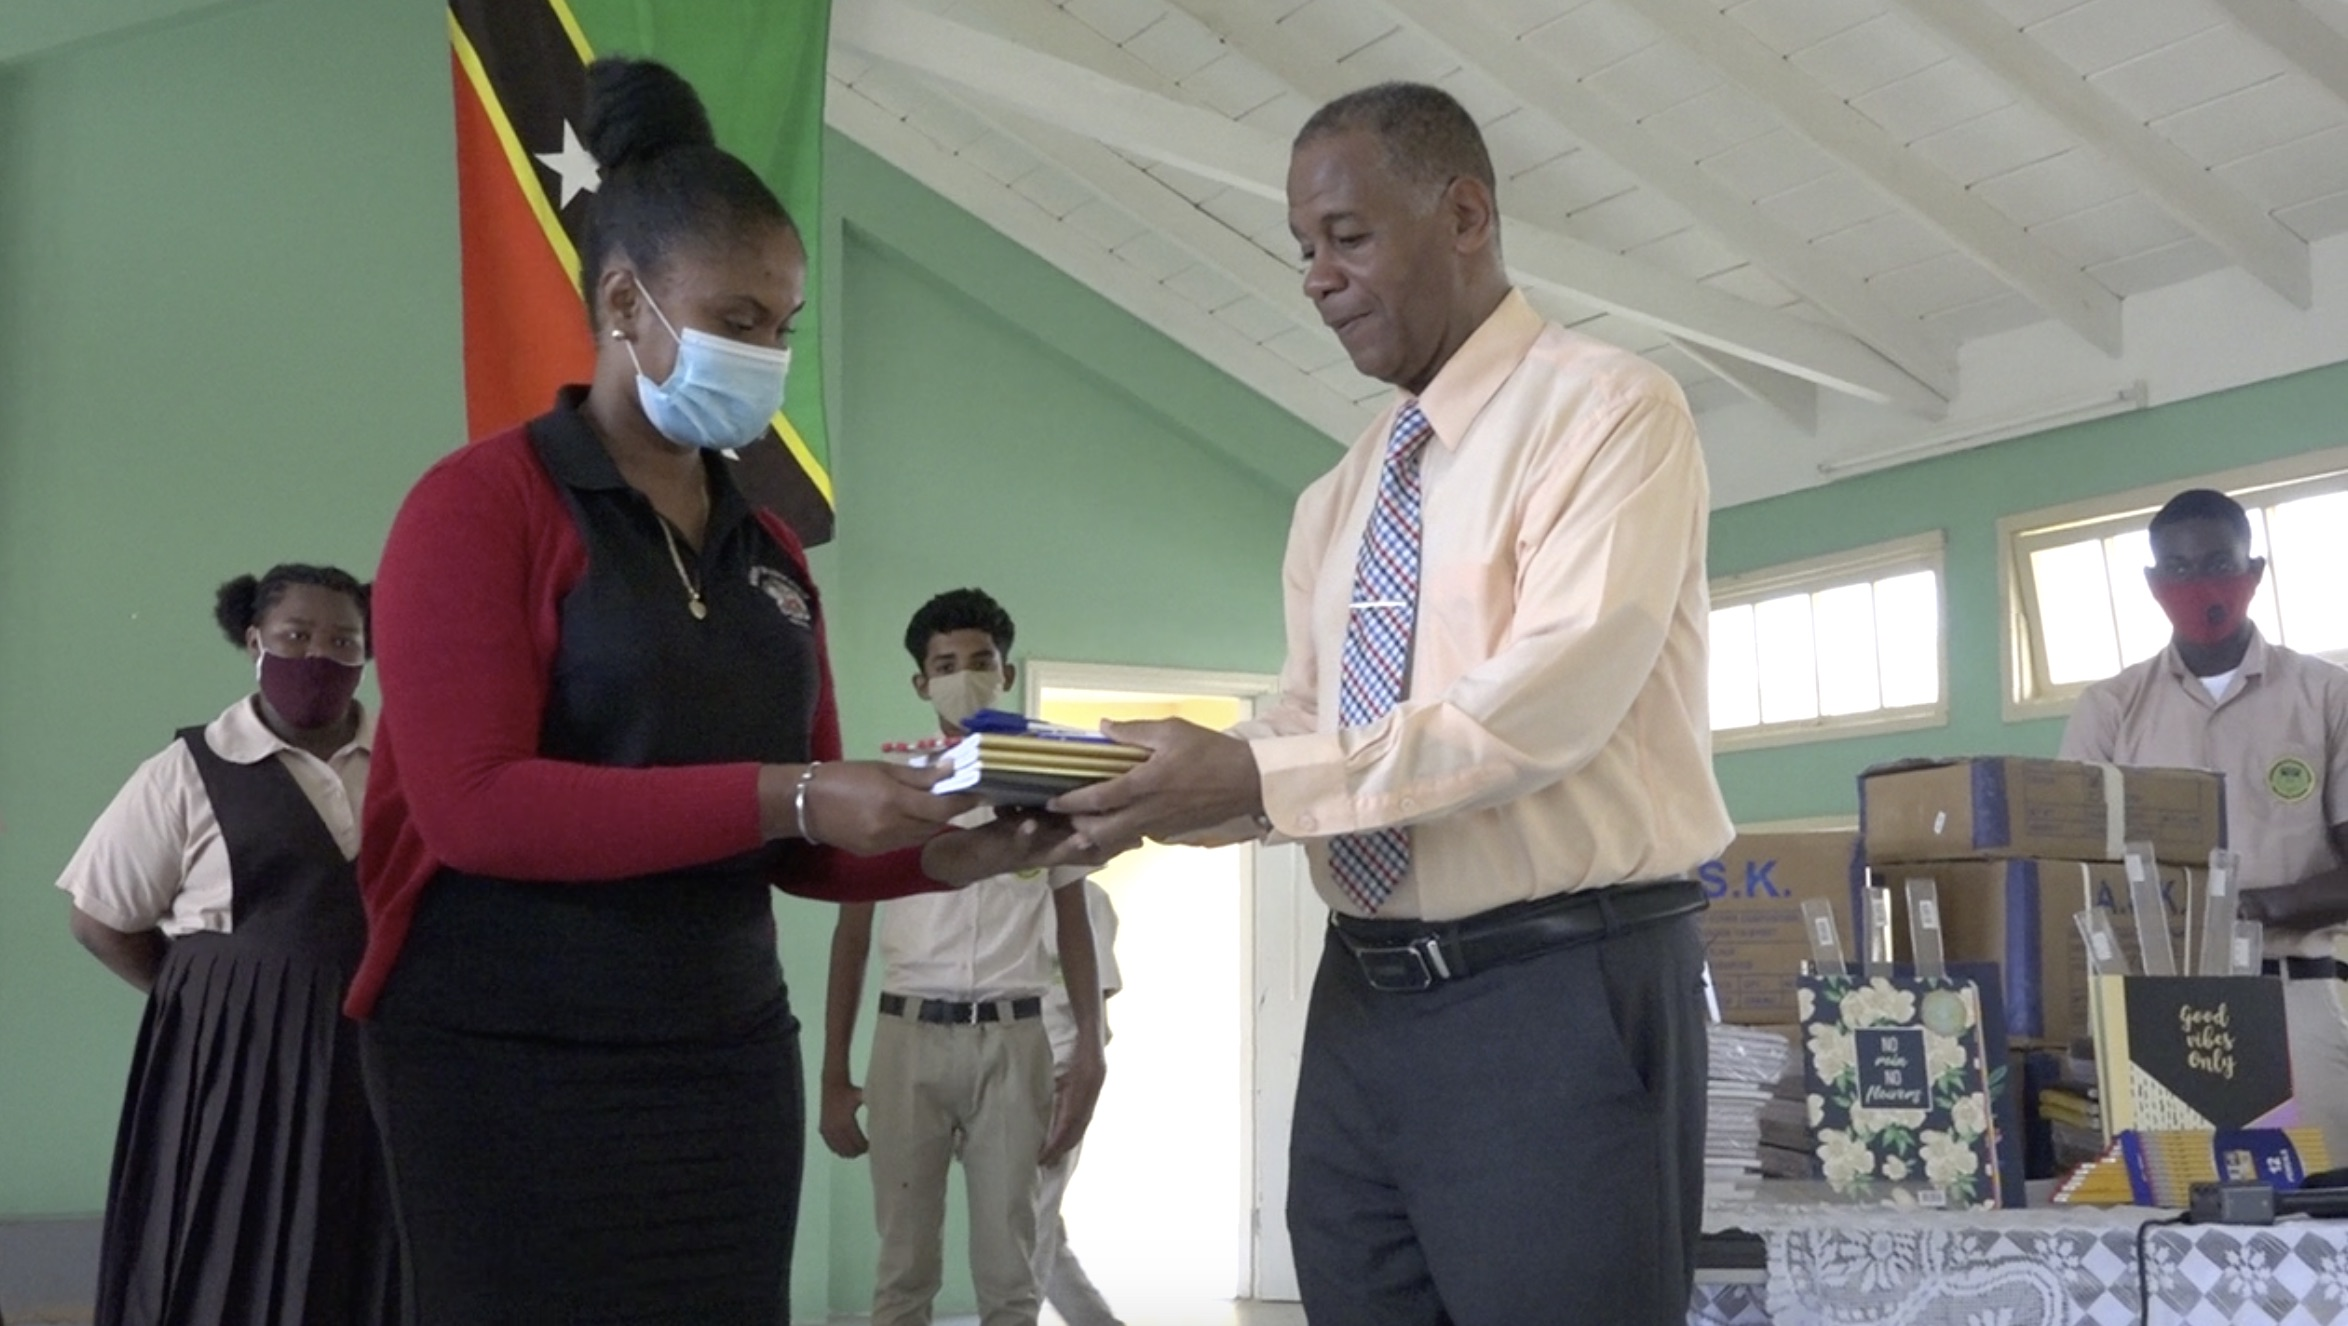 (l-r) Ms. Latoya Jeffers, Education Officer responsible for the Gingerland Secondary School accepts donation from Hon. Eric Evelyn, Minister of Youth and Community Development in the Nevis Island Administration, and area representative for St. George's, Gingerland on October 09, 2020